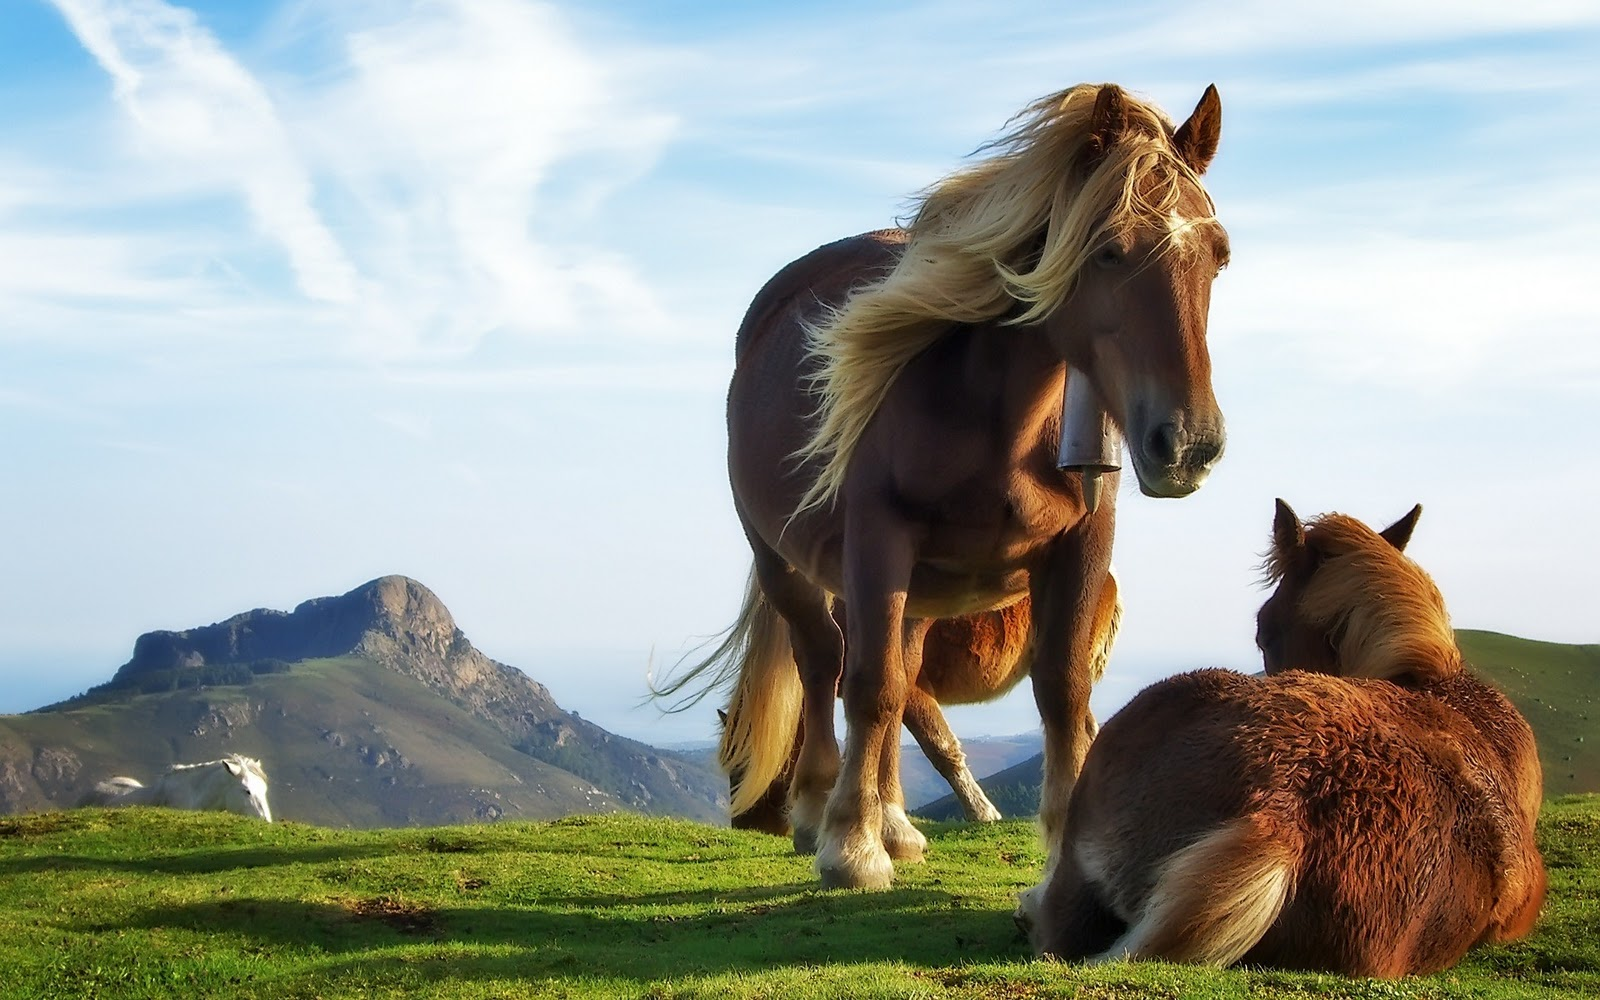 Horse Wallpapers Pictures Of Horse Hd Animal Wallpapers